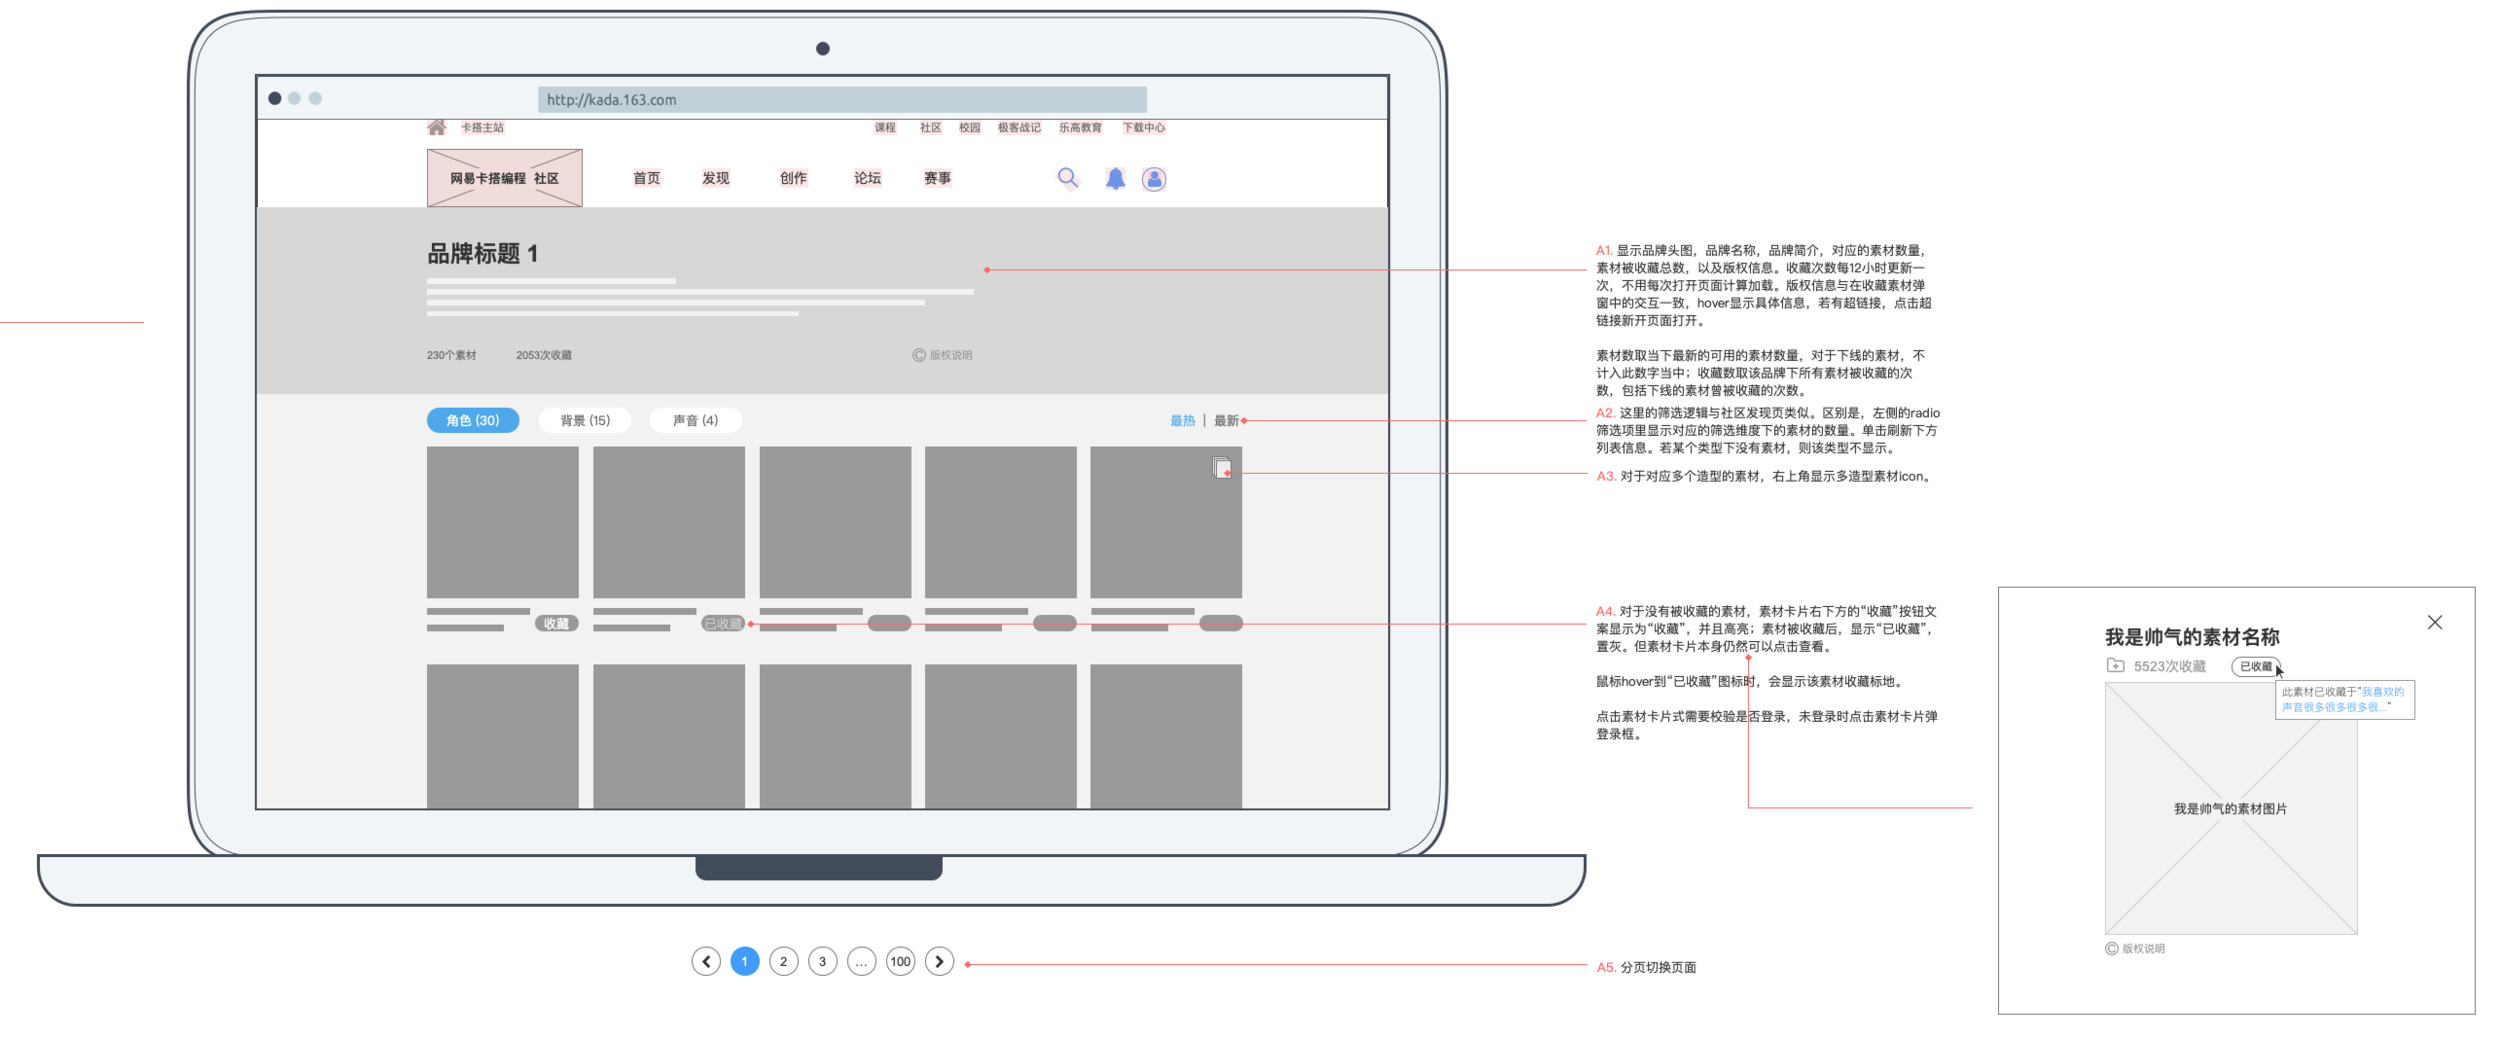 Figure 6: The wireframe for Branded Sprite Page